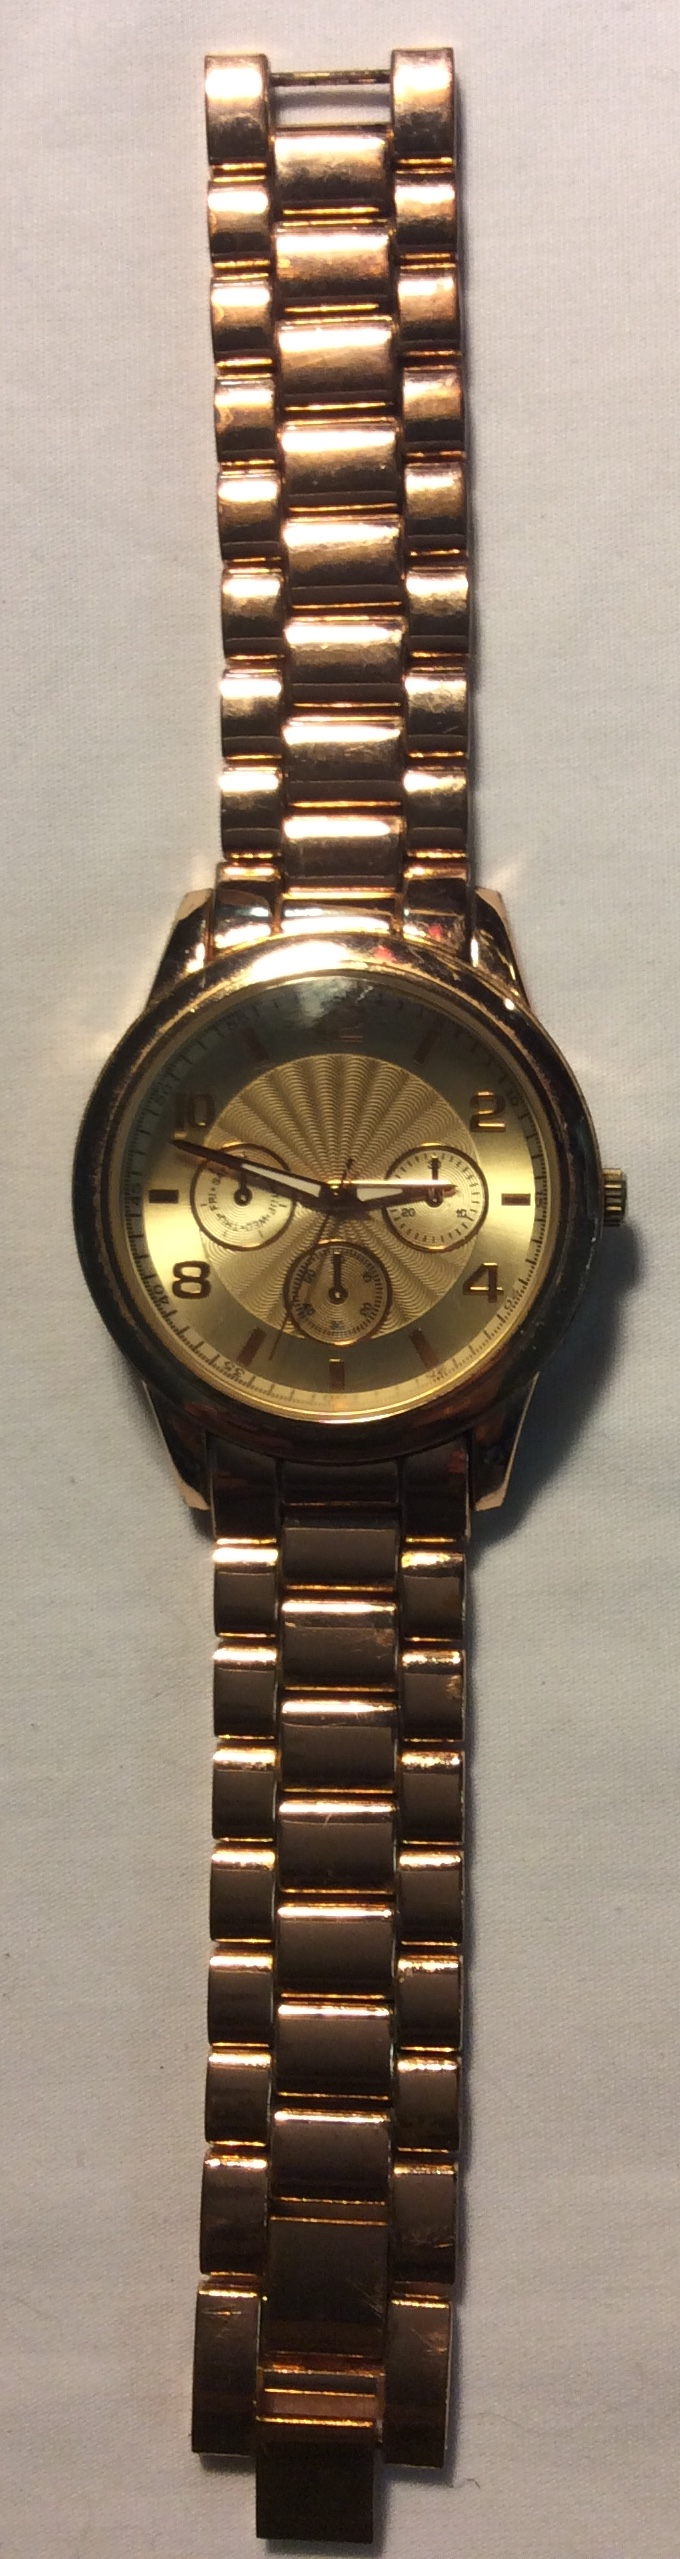 Round gold face with 3 smaller dials